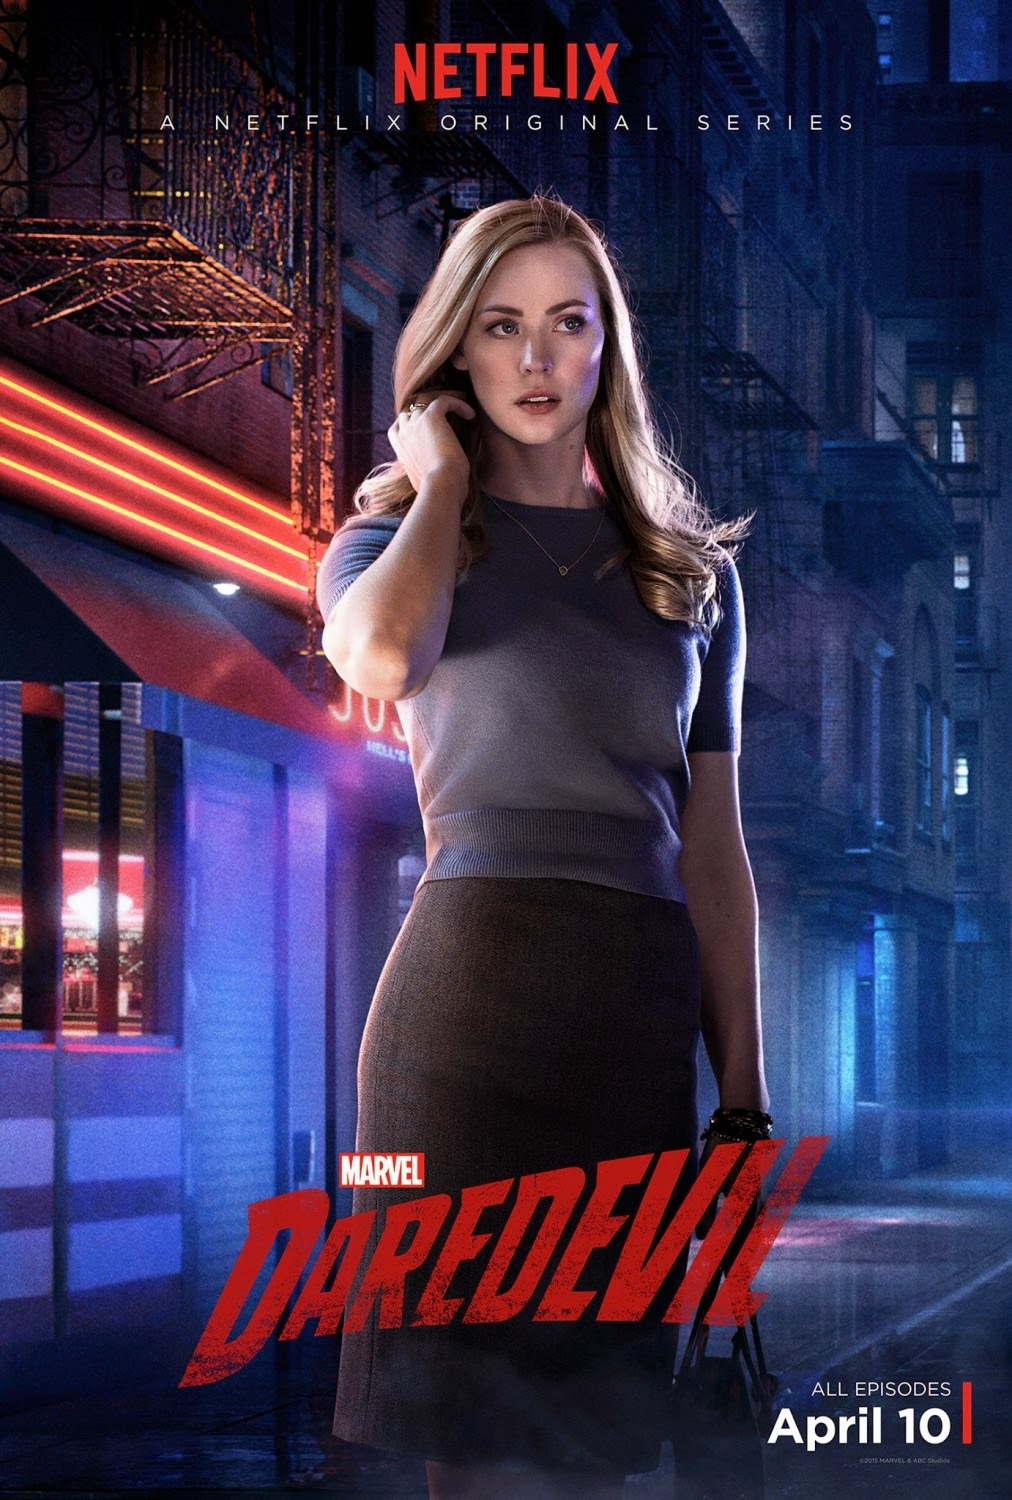 Marvel's Daredevil Character Television Poster Set - Deborah Ann Woll as Karen Page